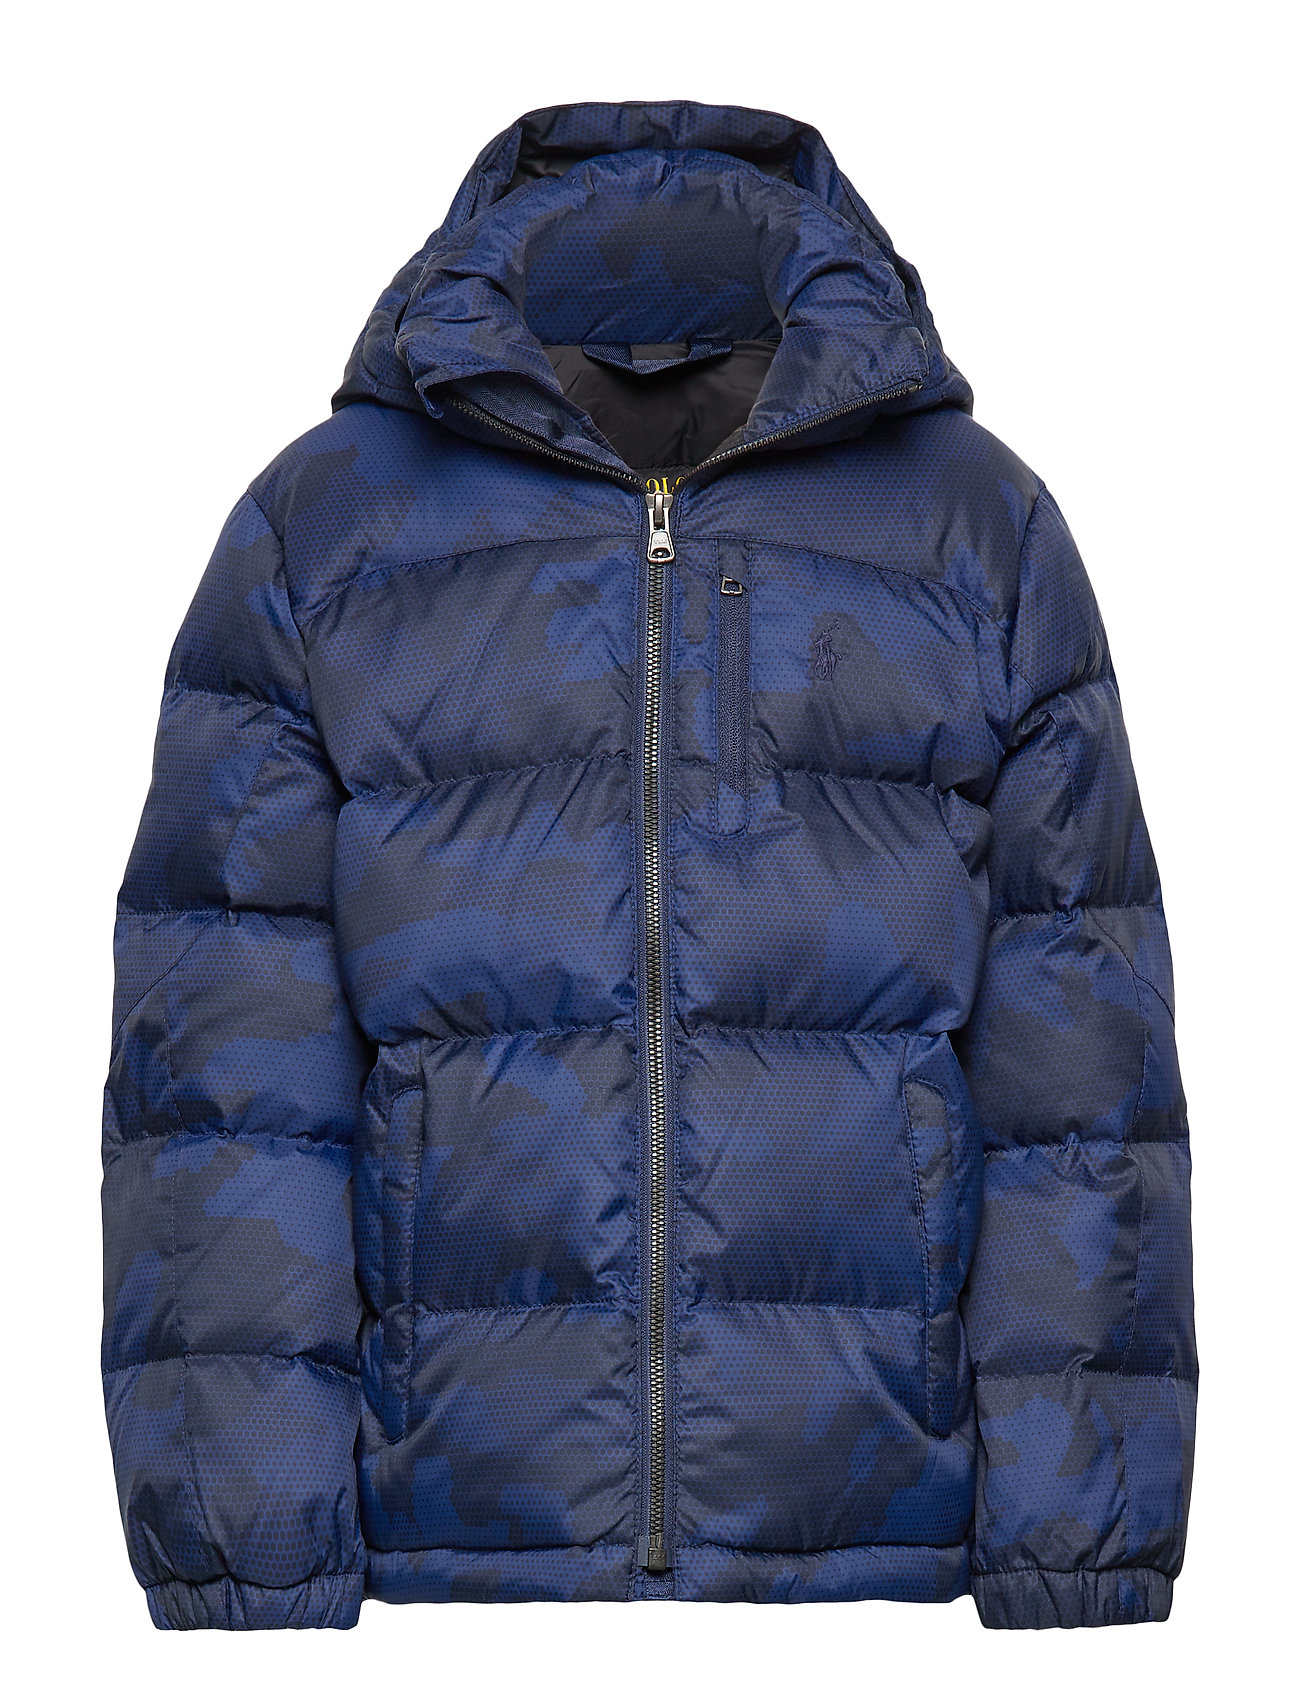 Ralph Lauren Kids Hooded Camo Down Jacket - NAVY CAMO